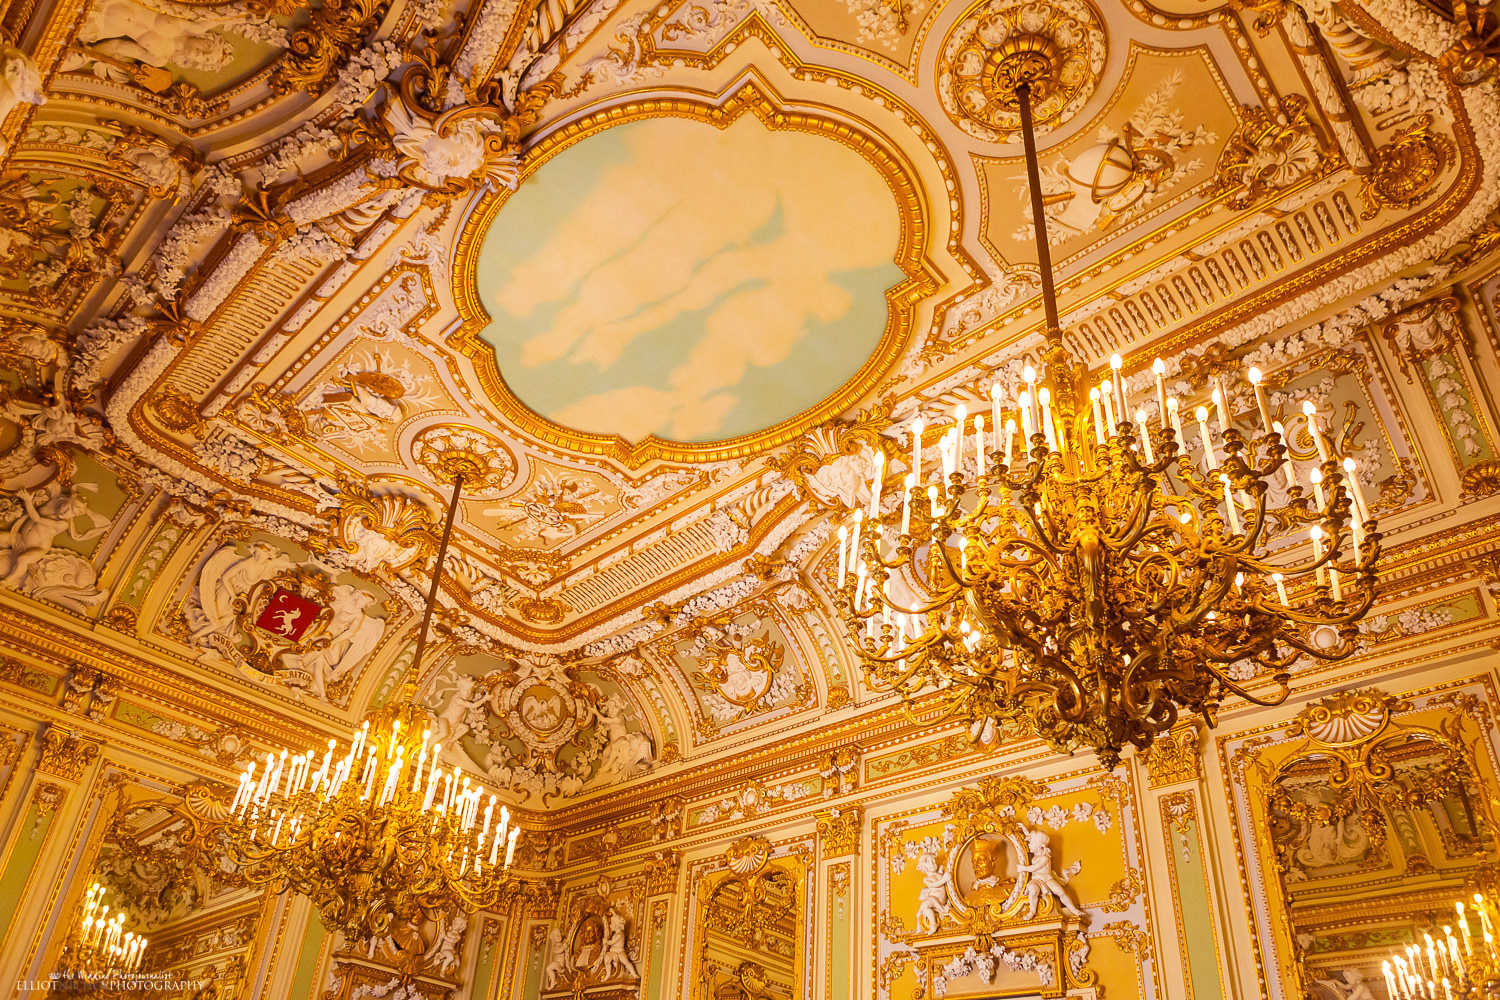 Photo of ceiling of the Maltese wedding venue, Palazzo Parisio's Ballroom, Naxxar, Malta.